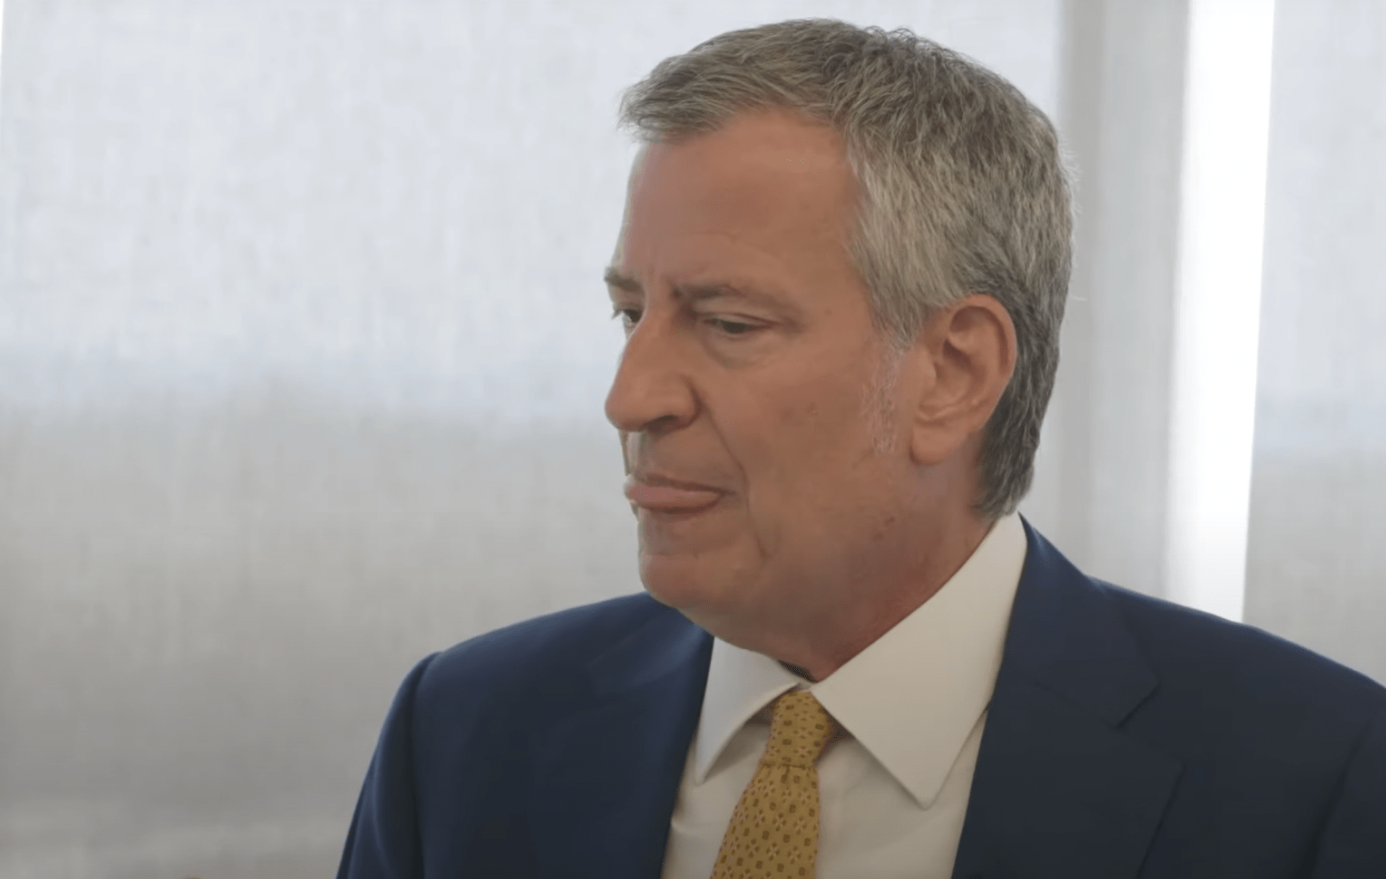 NYC Mayor Ends Solitary in Jails for Inmates With Medical Conditions, Seeks to Abolish Practice Altogether Later This Year